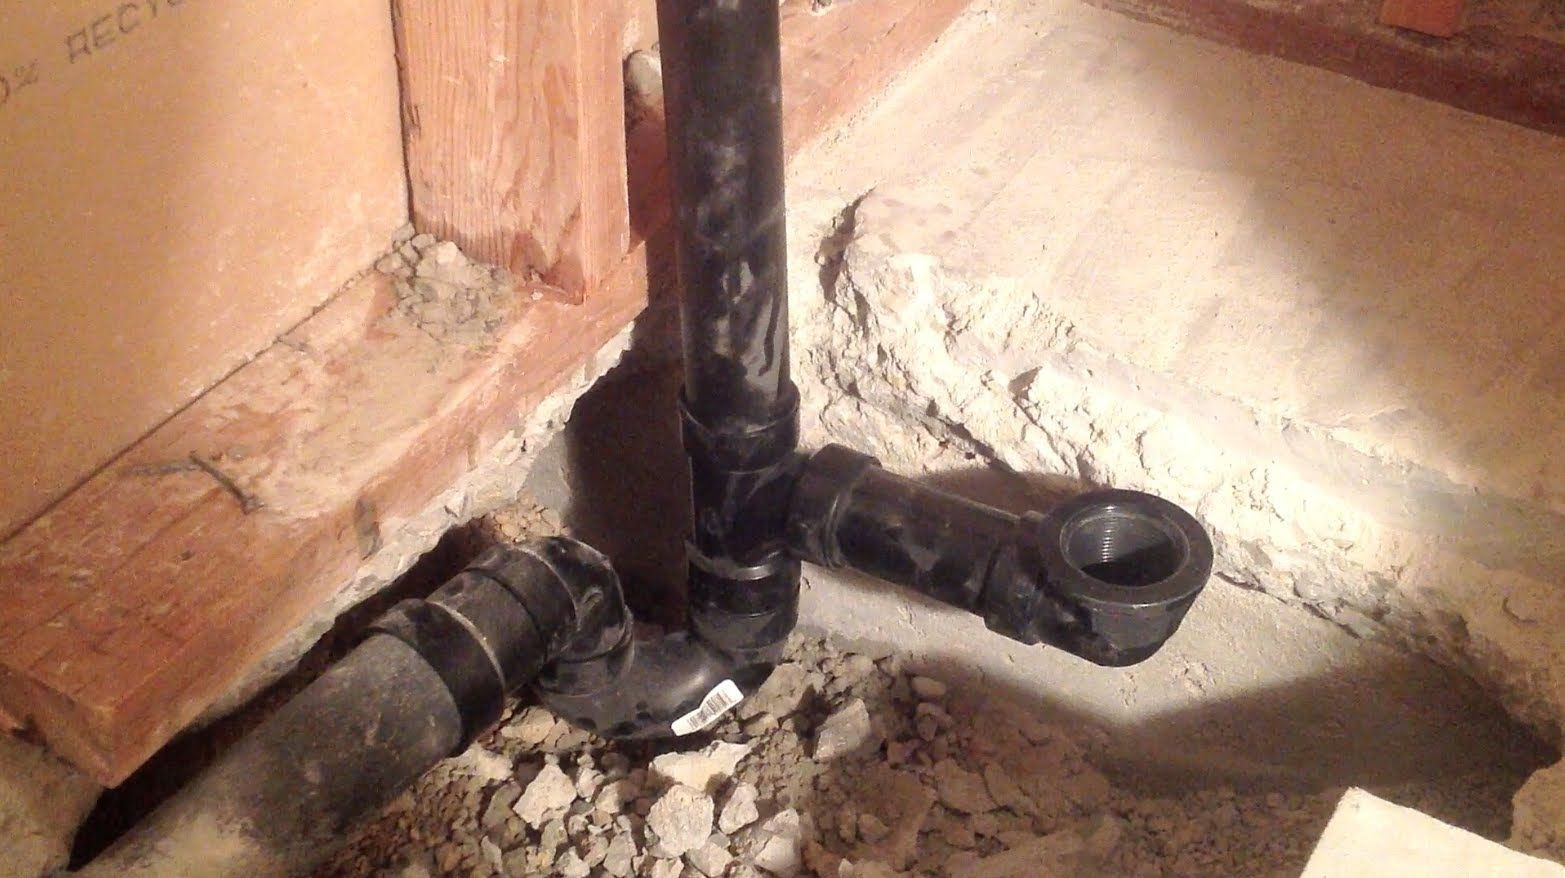 Learn how to do the plumbing for a new bathtub installation. In this ...